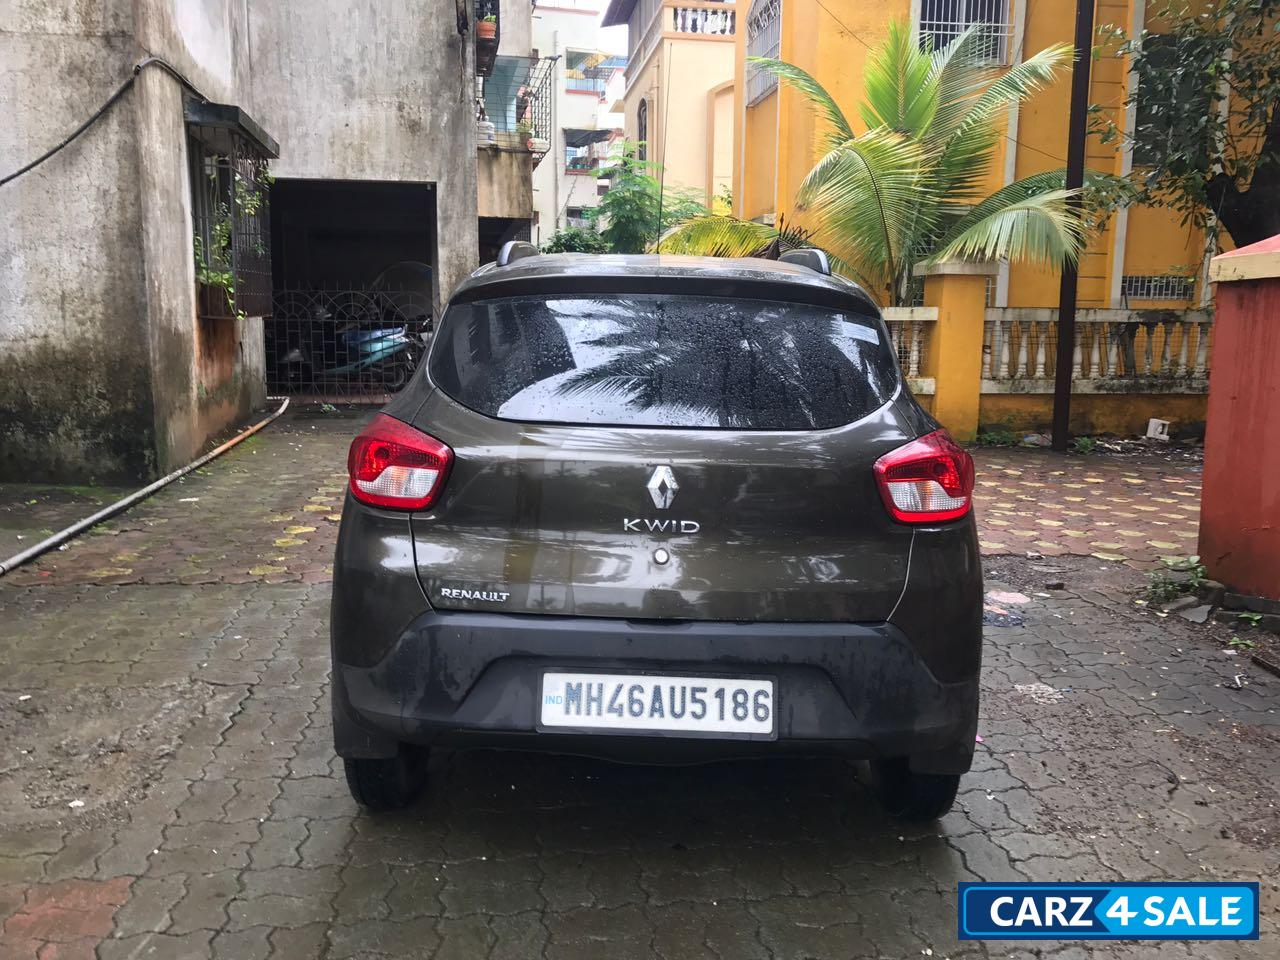 Copper Bronze Renault Kwid Rxt Opt Picture 2 Car Id 6836 Car